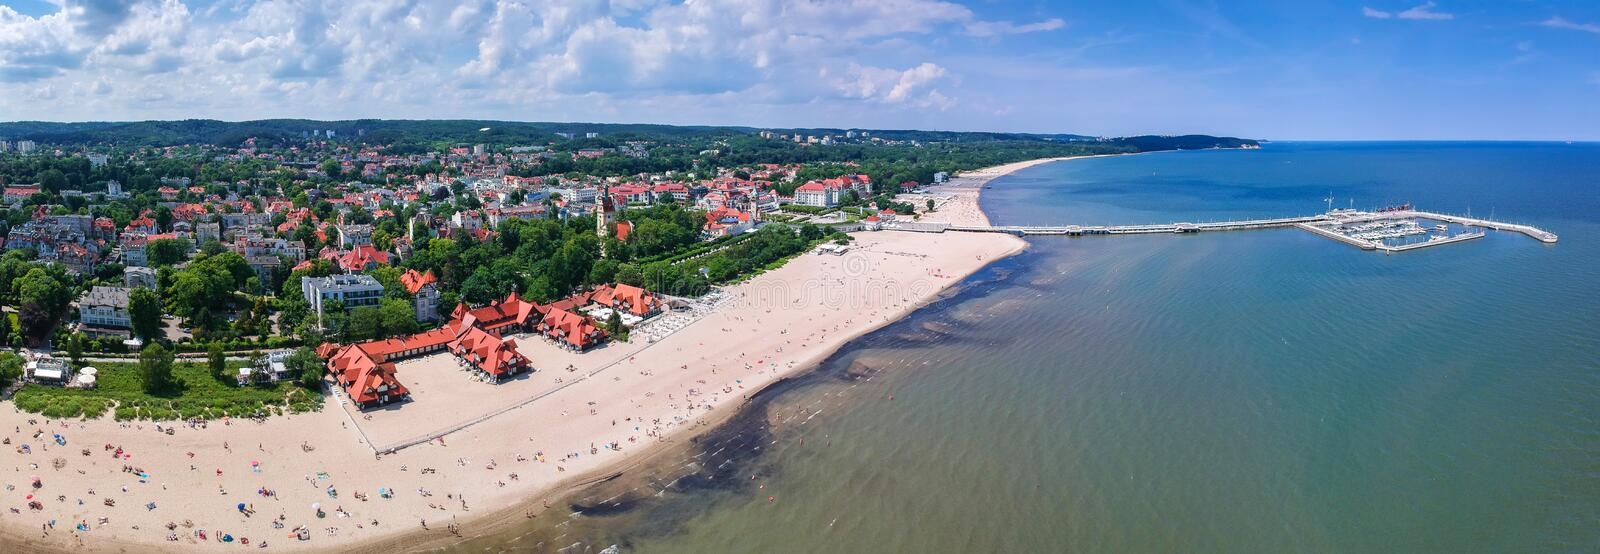 Panorama of the Baltic sea coastline with wooden pier in Sopot, Poland. Aerial, view, beach, vacation, molo, tourist, water, travel, promenade, europe royalty free stock image